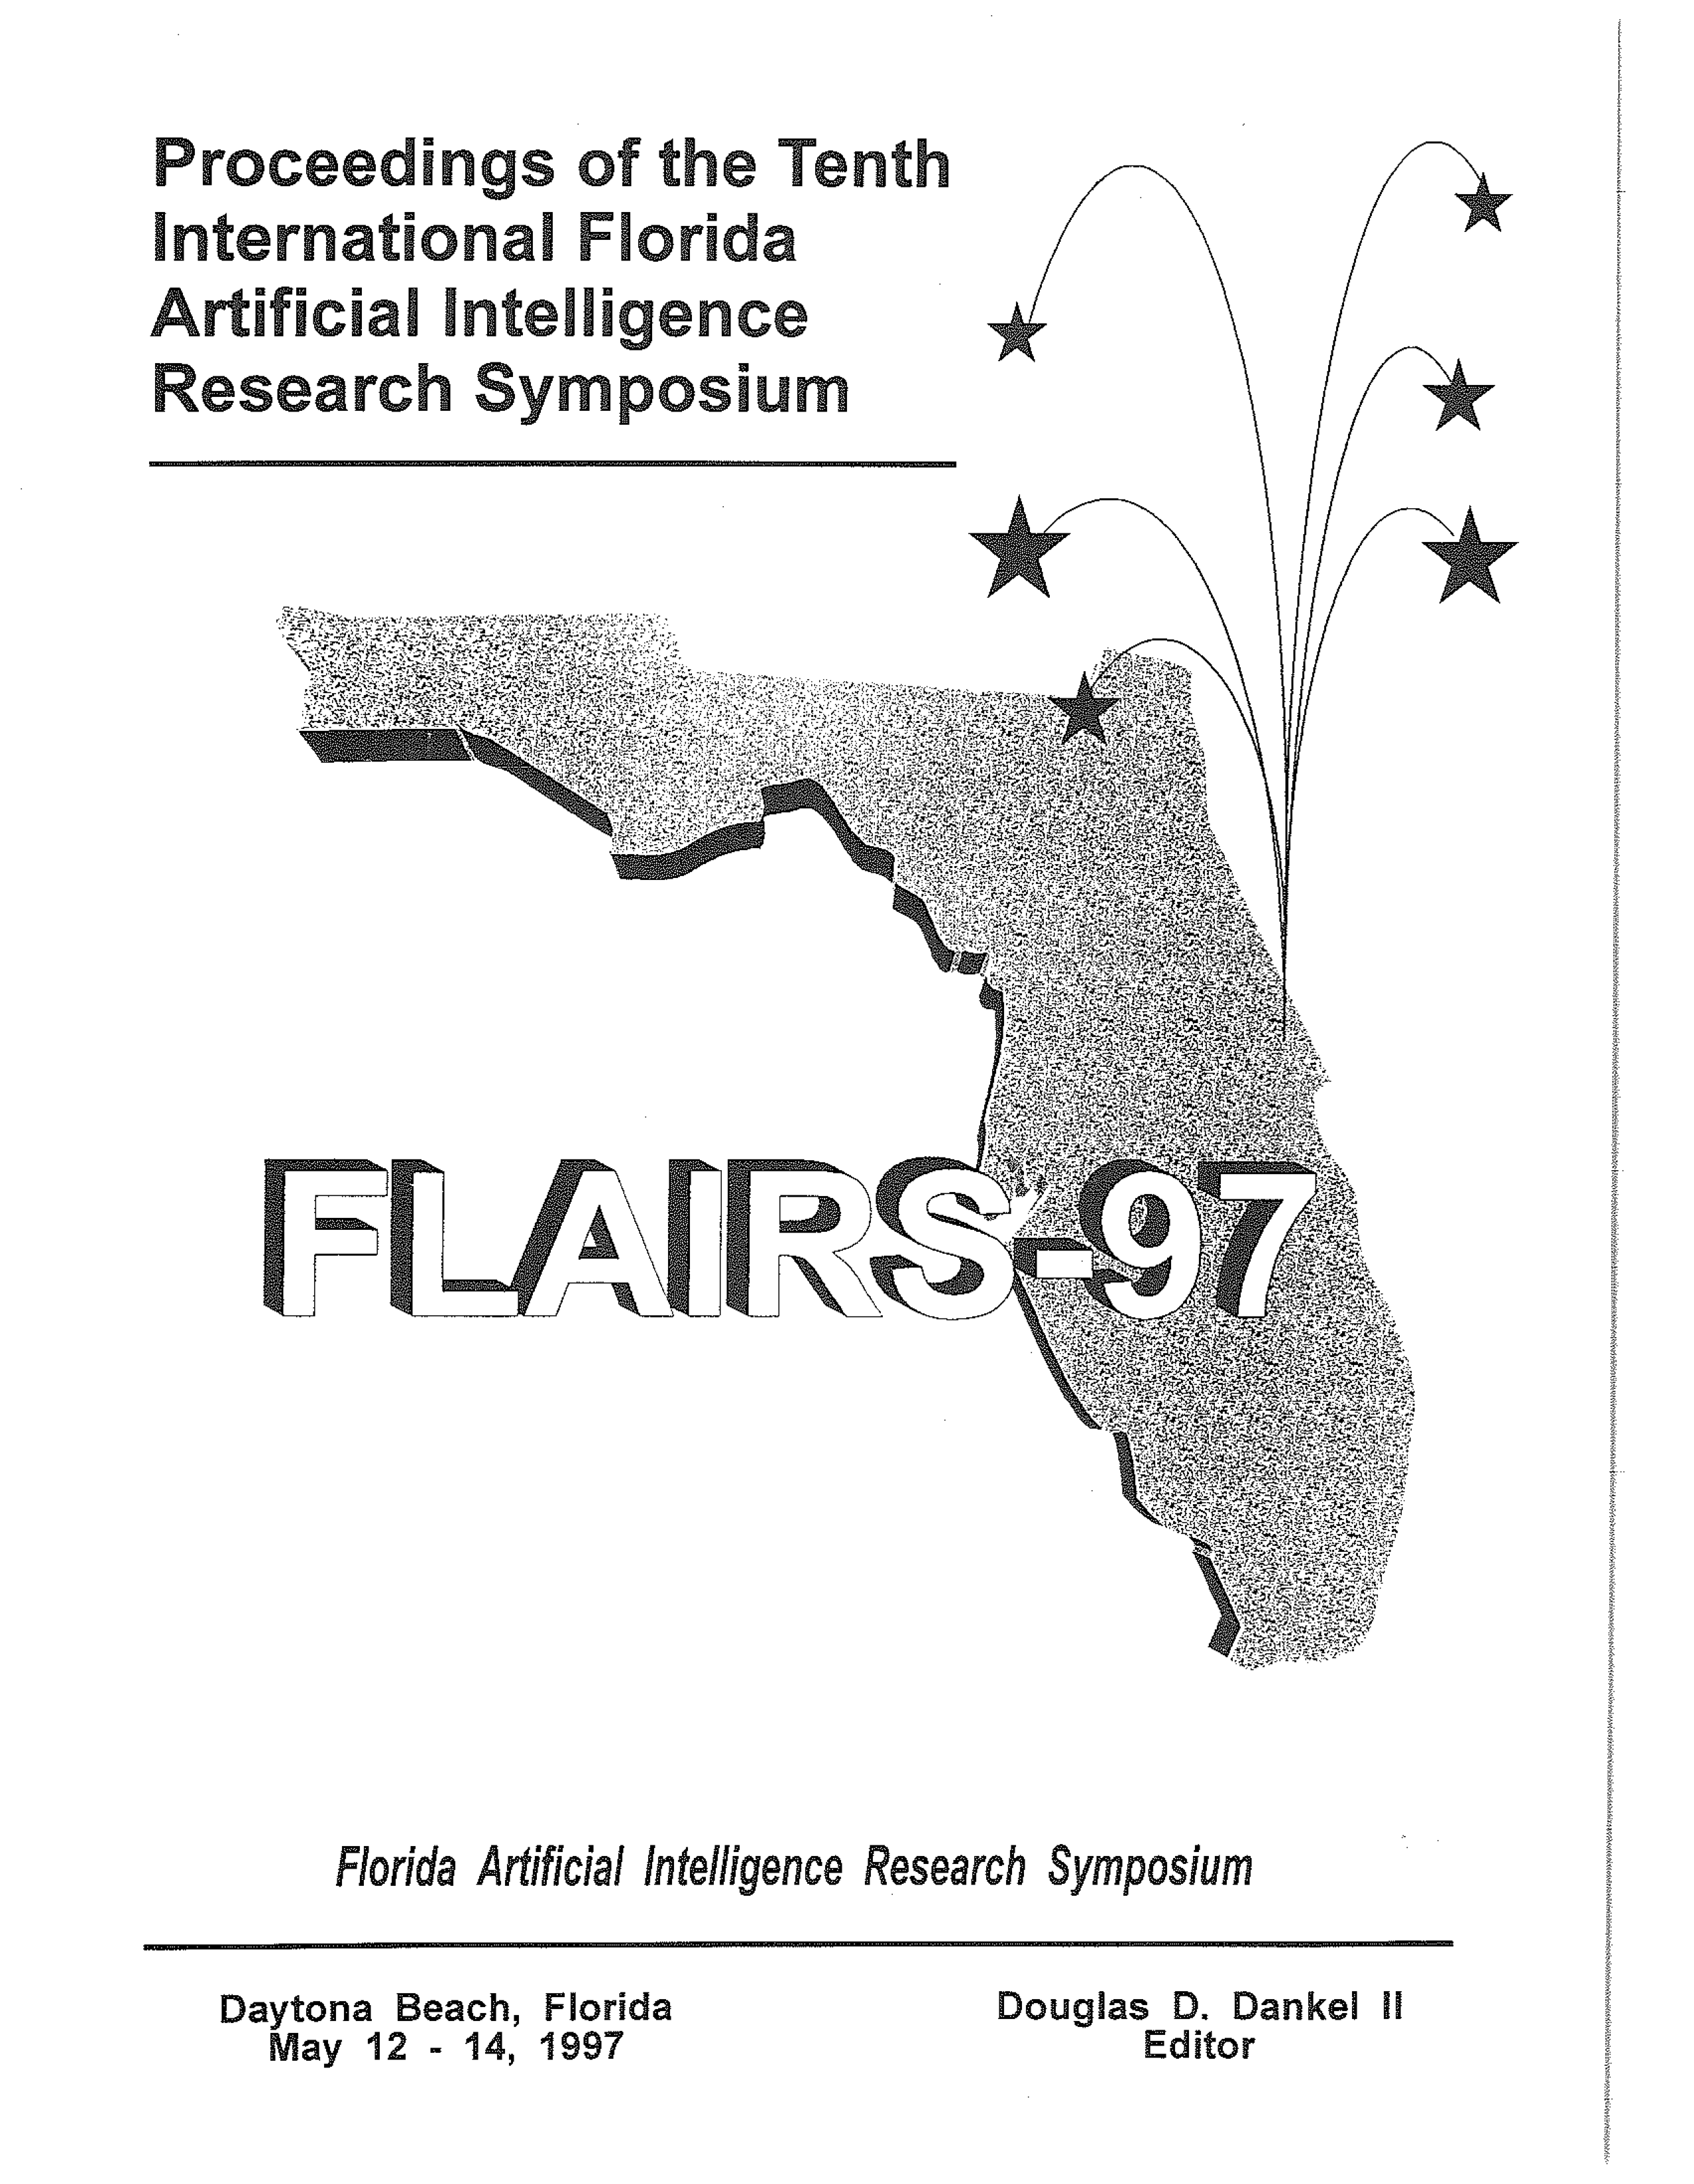 Proceedings of FLAIRS-10, cover